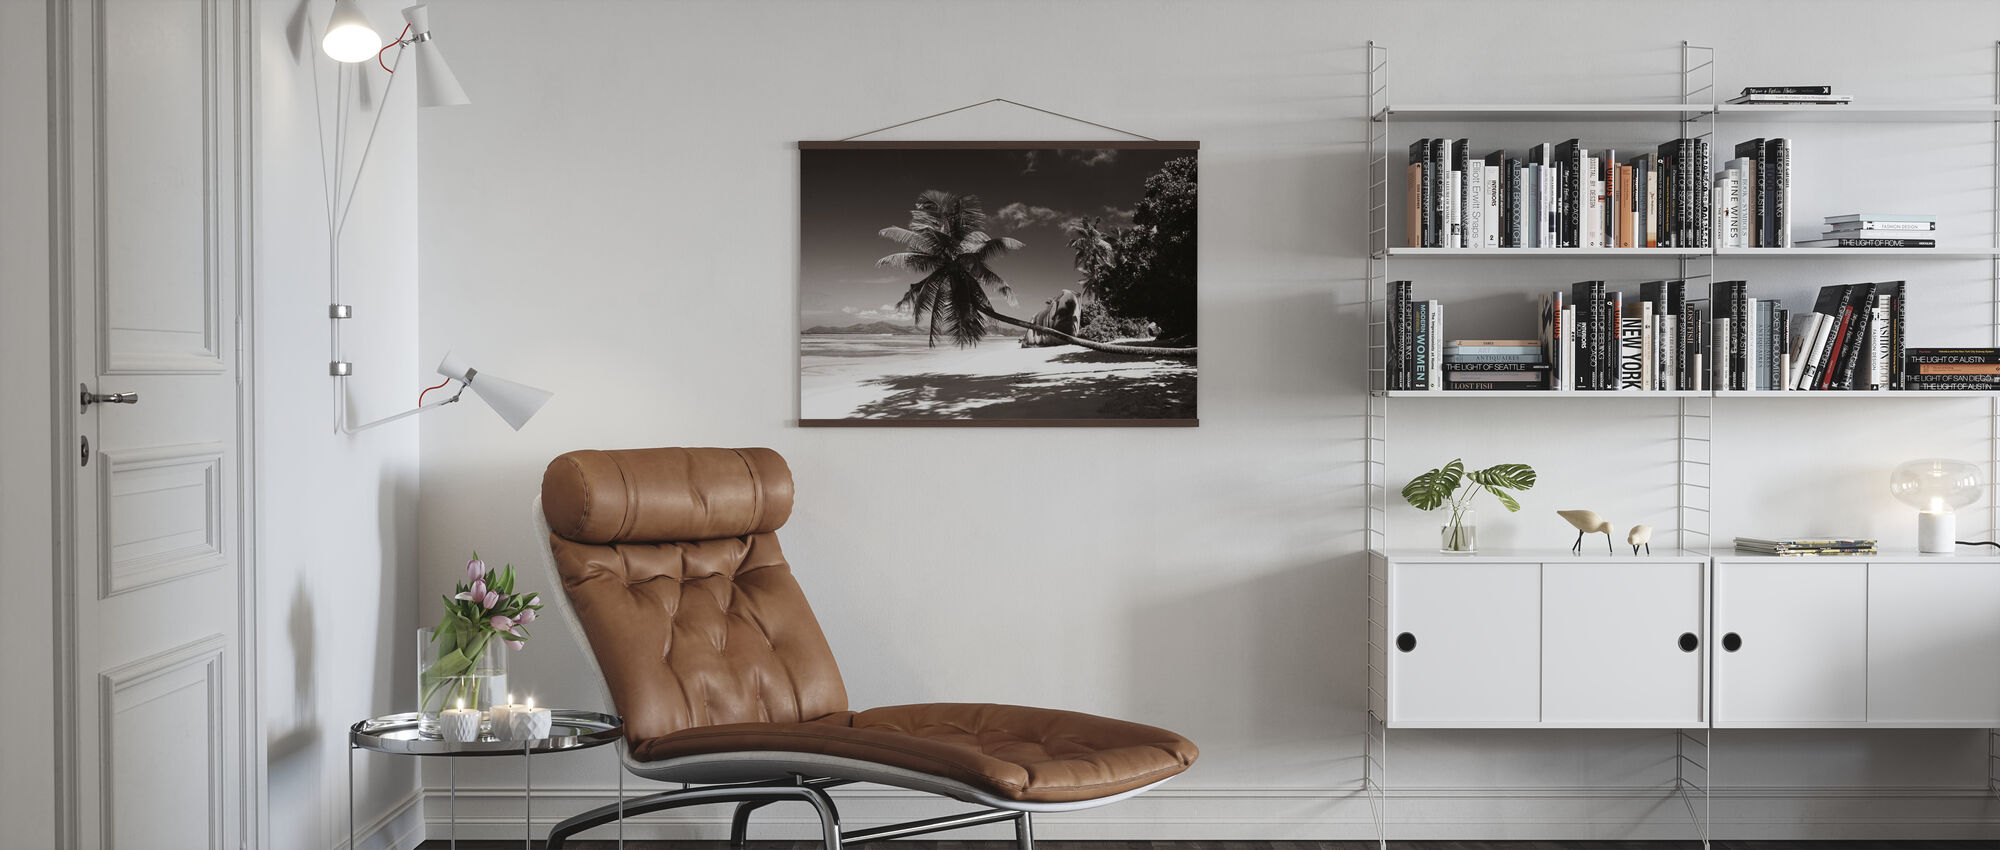 Paradise - Sepia - Poster - Living Room